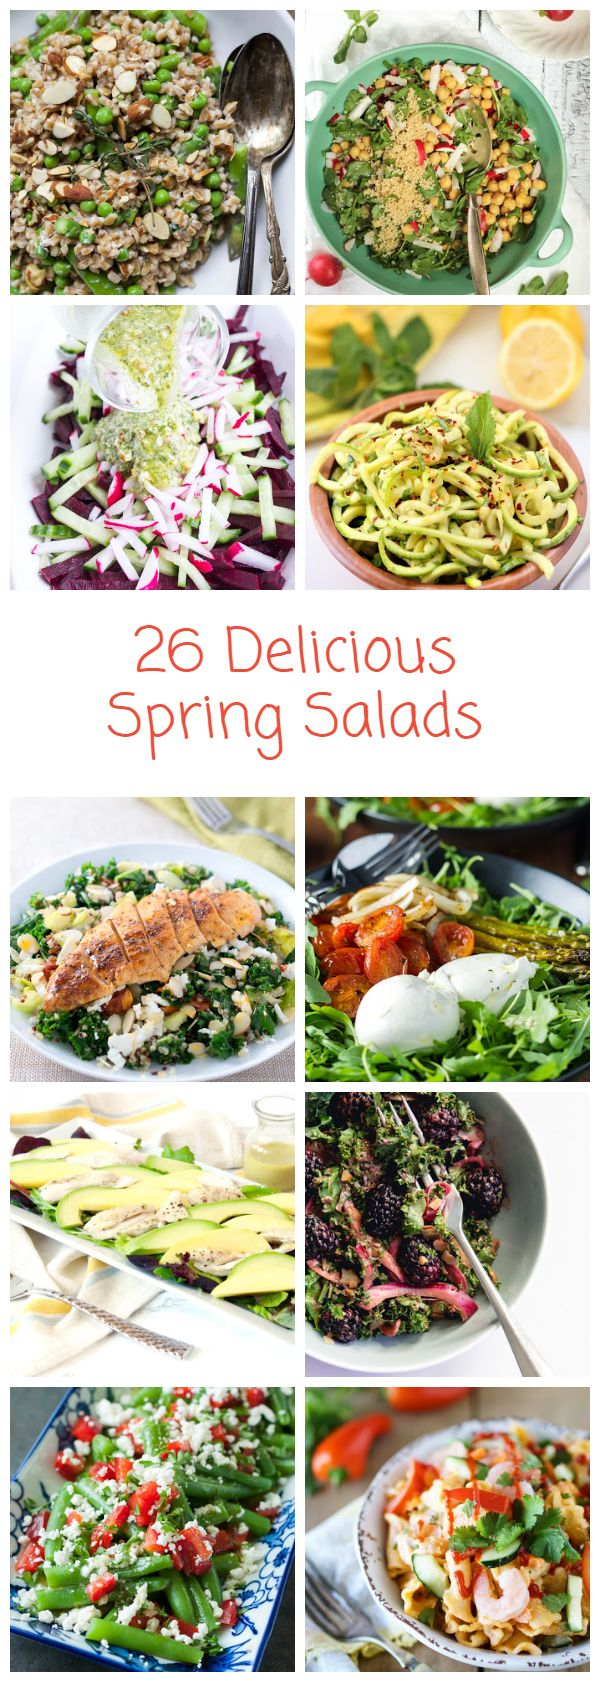 Delicious salad #recipes to use up all those spring veggies